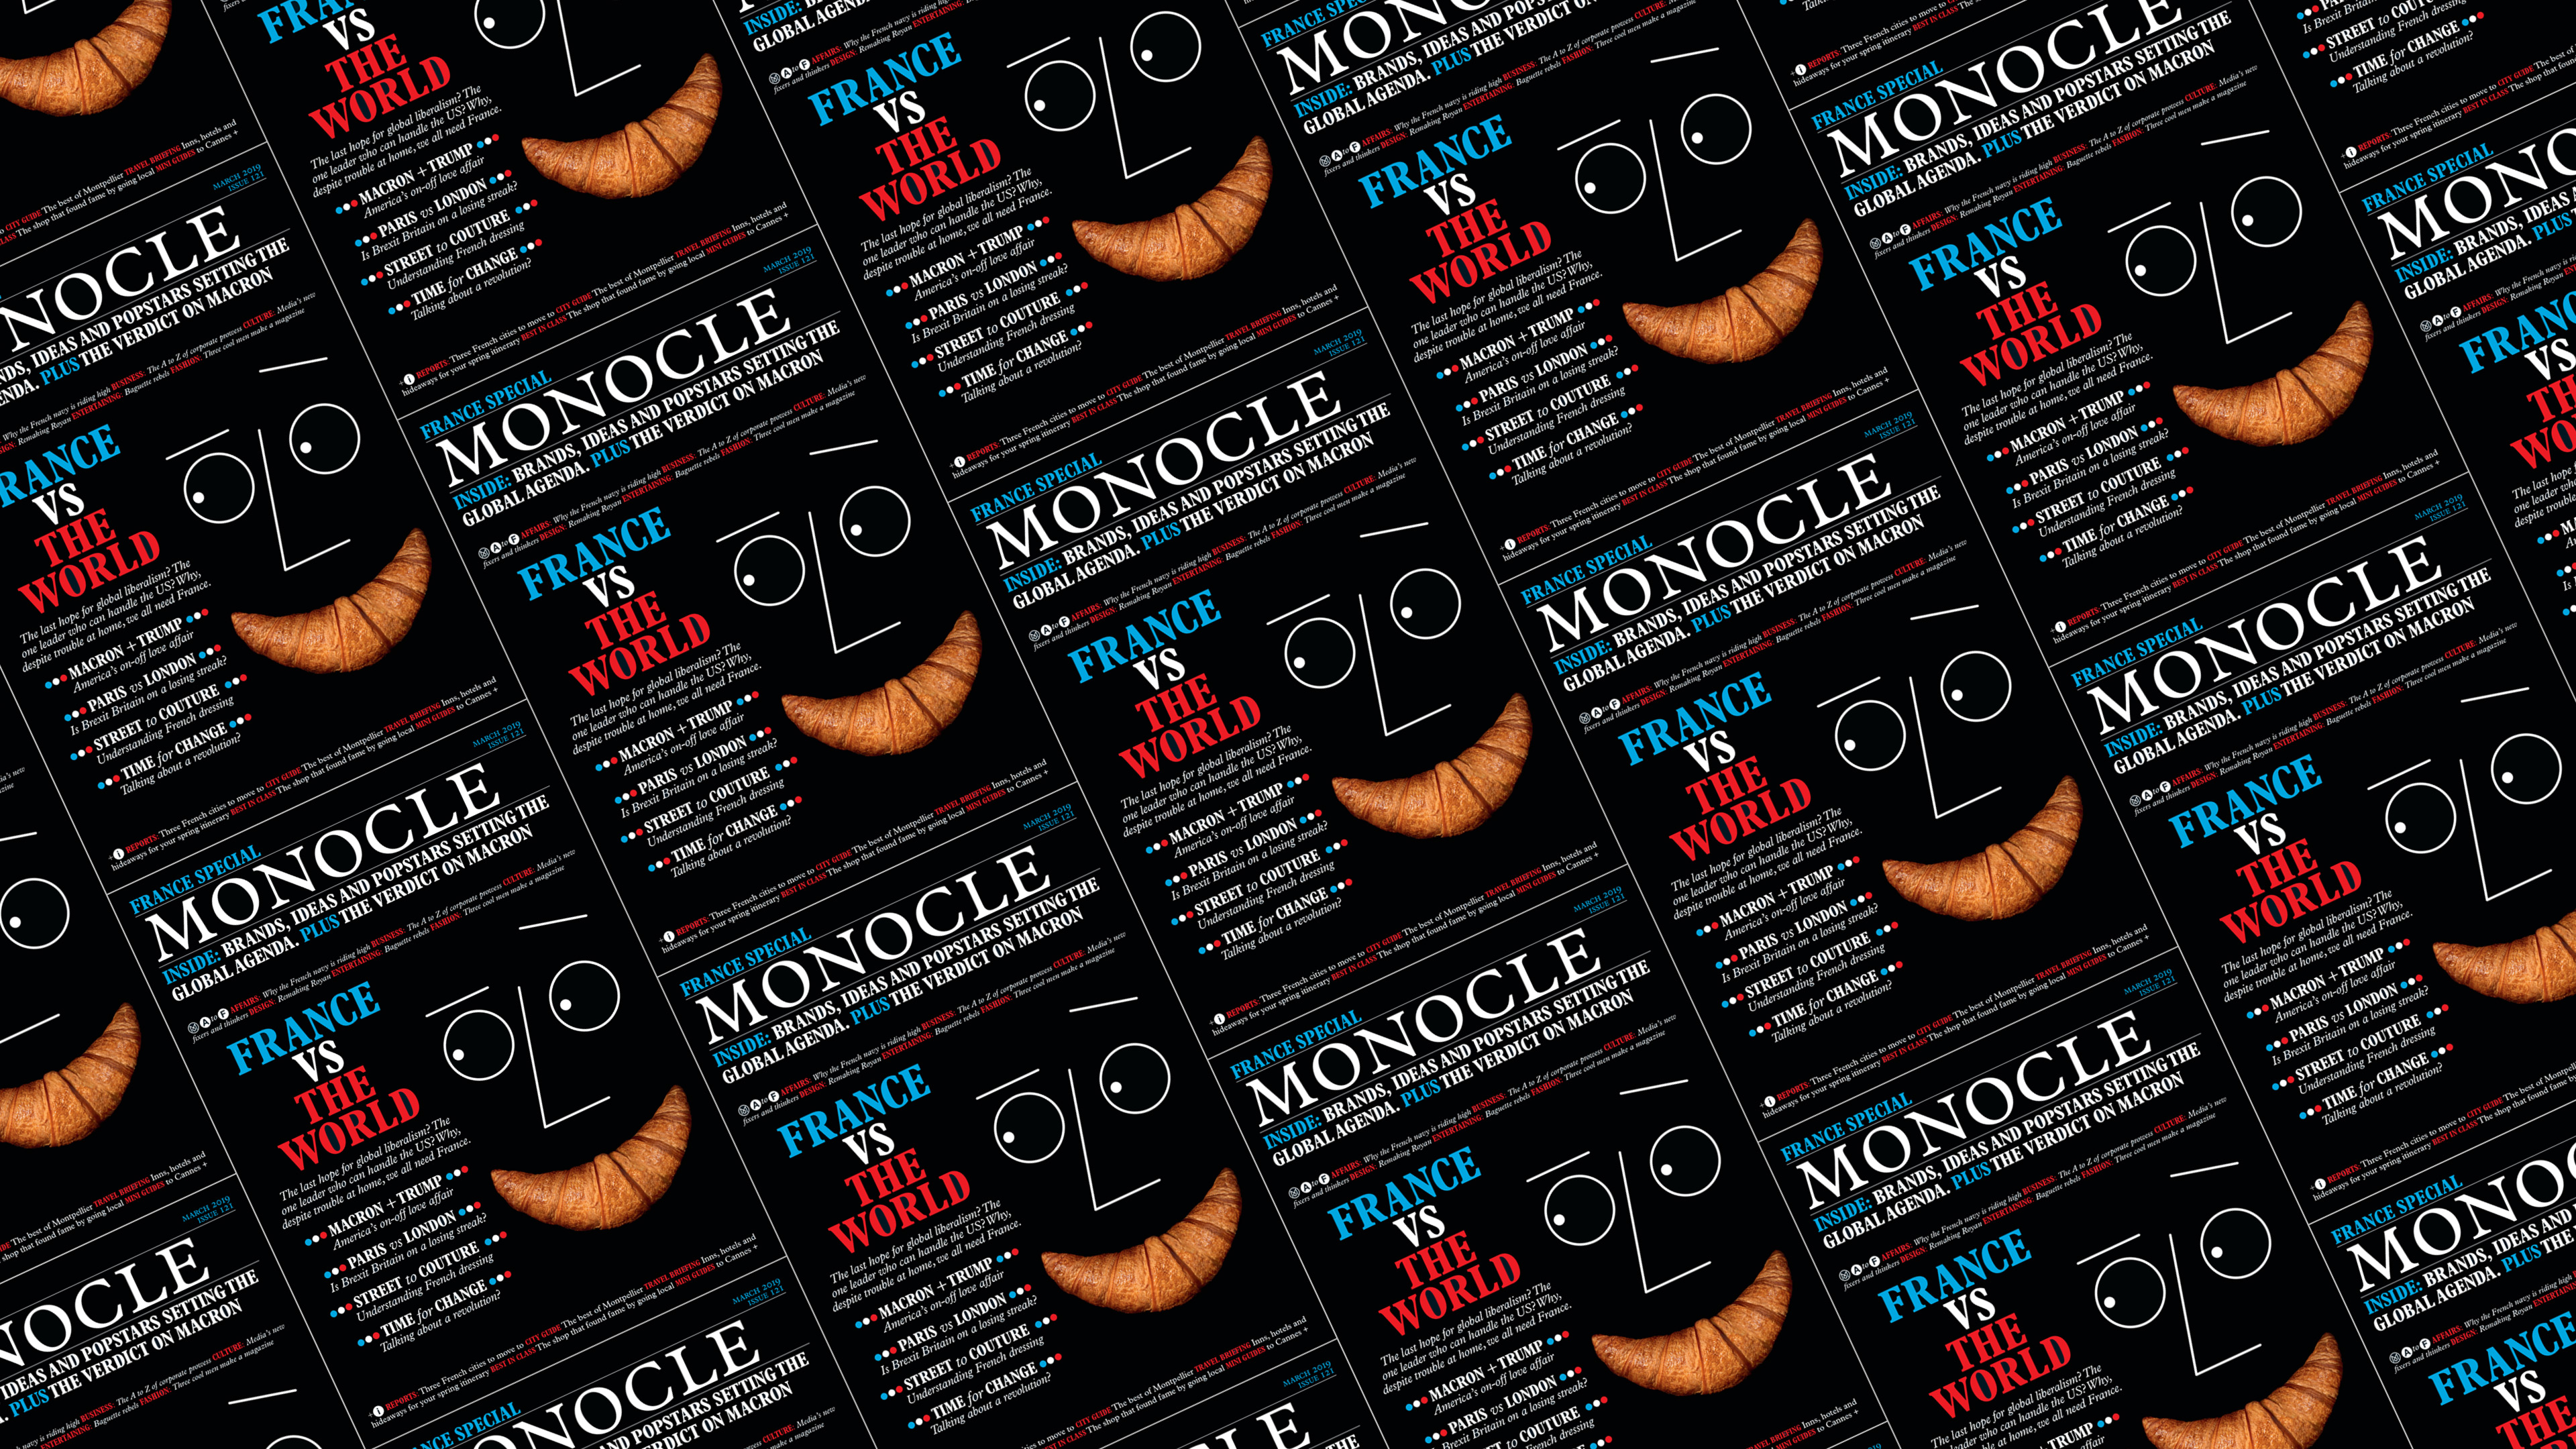 Magasin De Design Montpellier monocle preview: march issue, 2019 - film | monocle